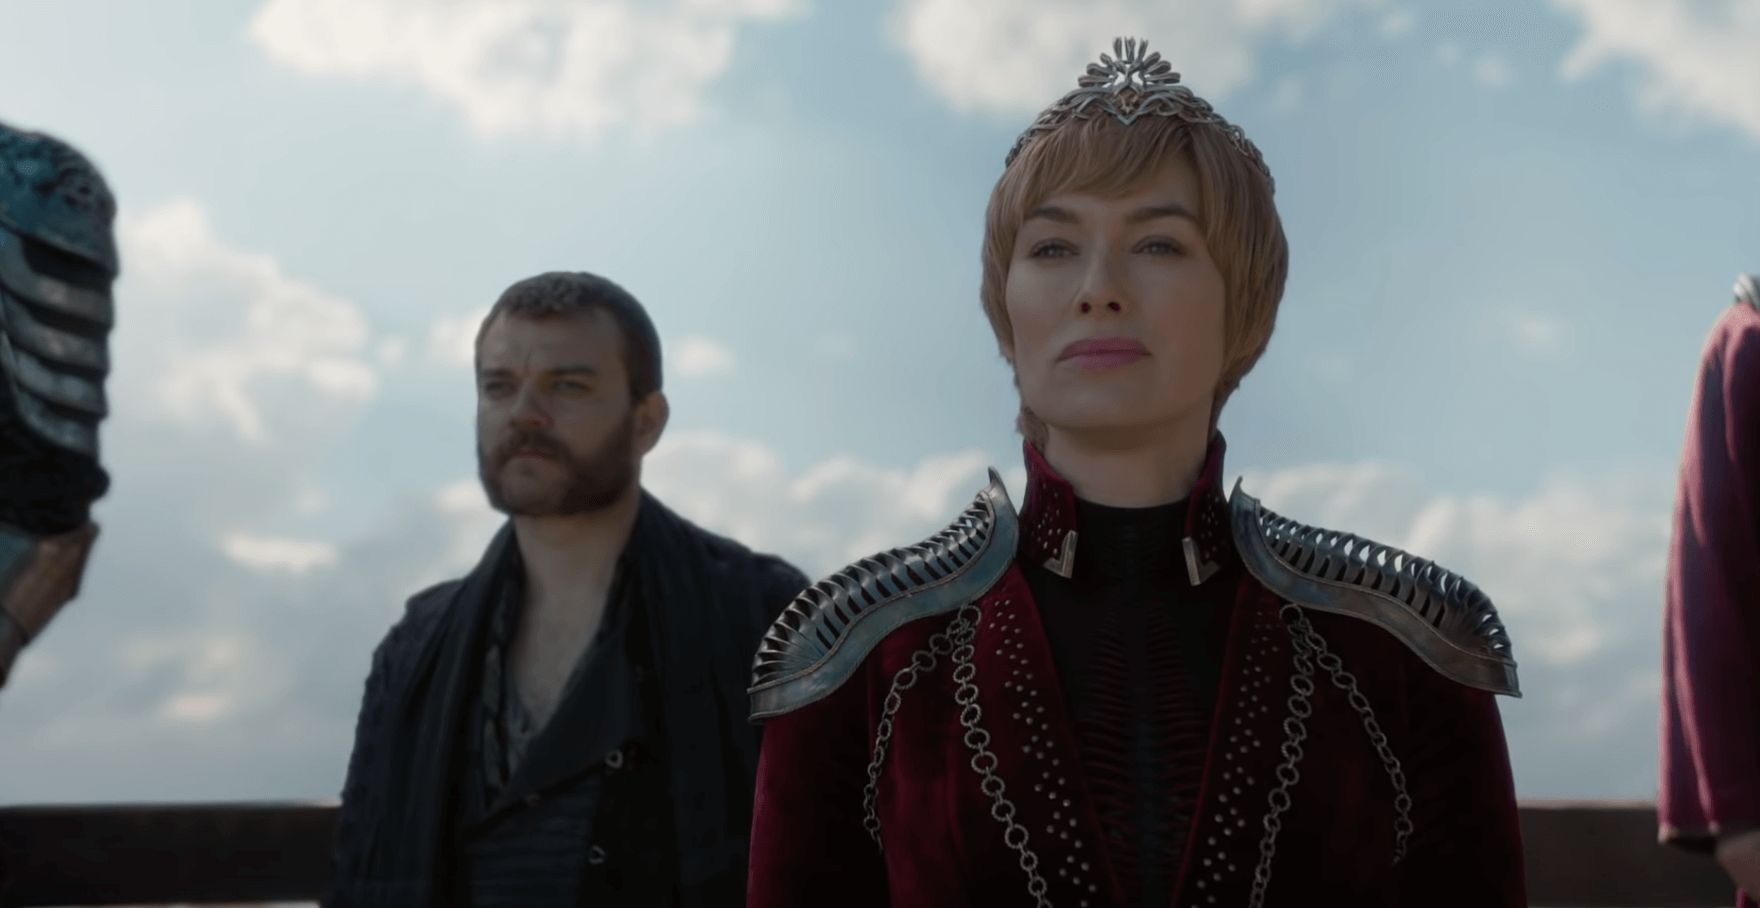 Image may contain: Game of Thrones episode 4, season 8 episode 4, Game of Thrones trailer, Game of Thrones, Cersei, Coat, Jacket, Apparel, Clothing, Person, Human